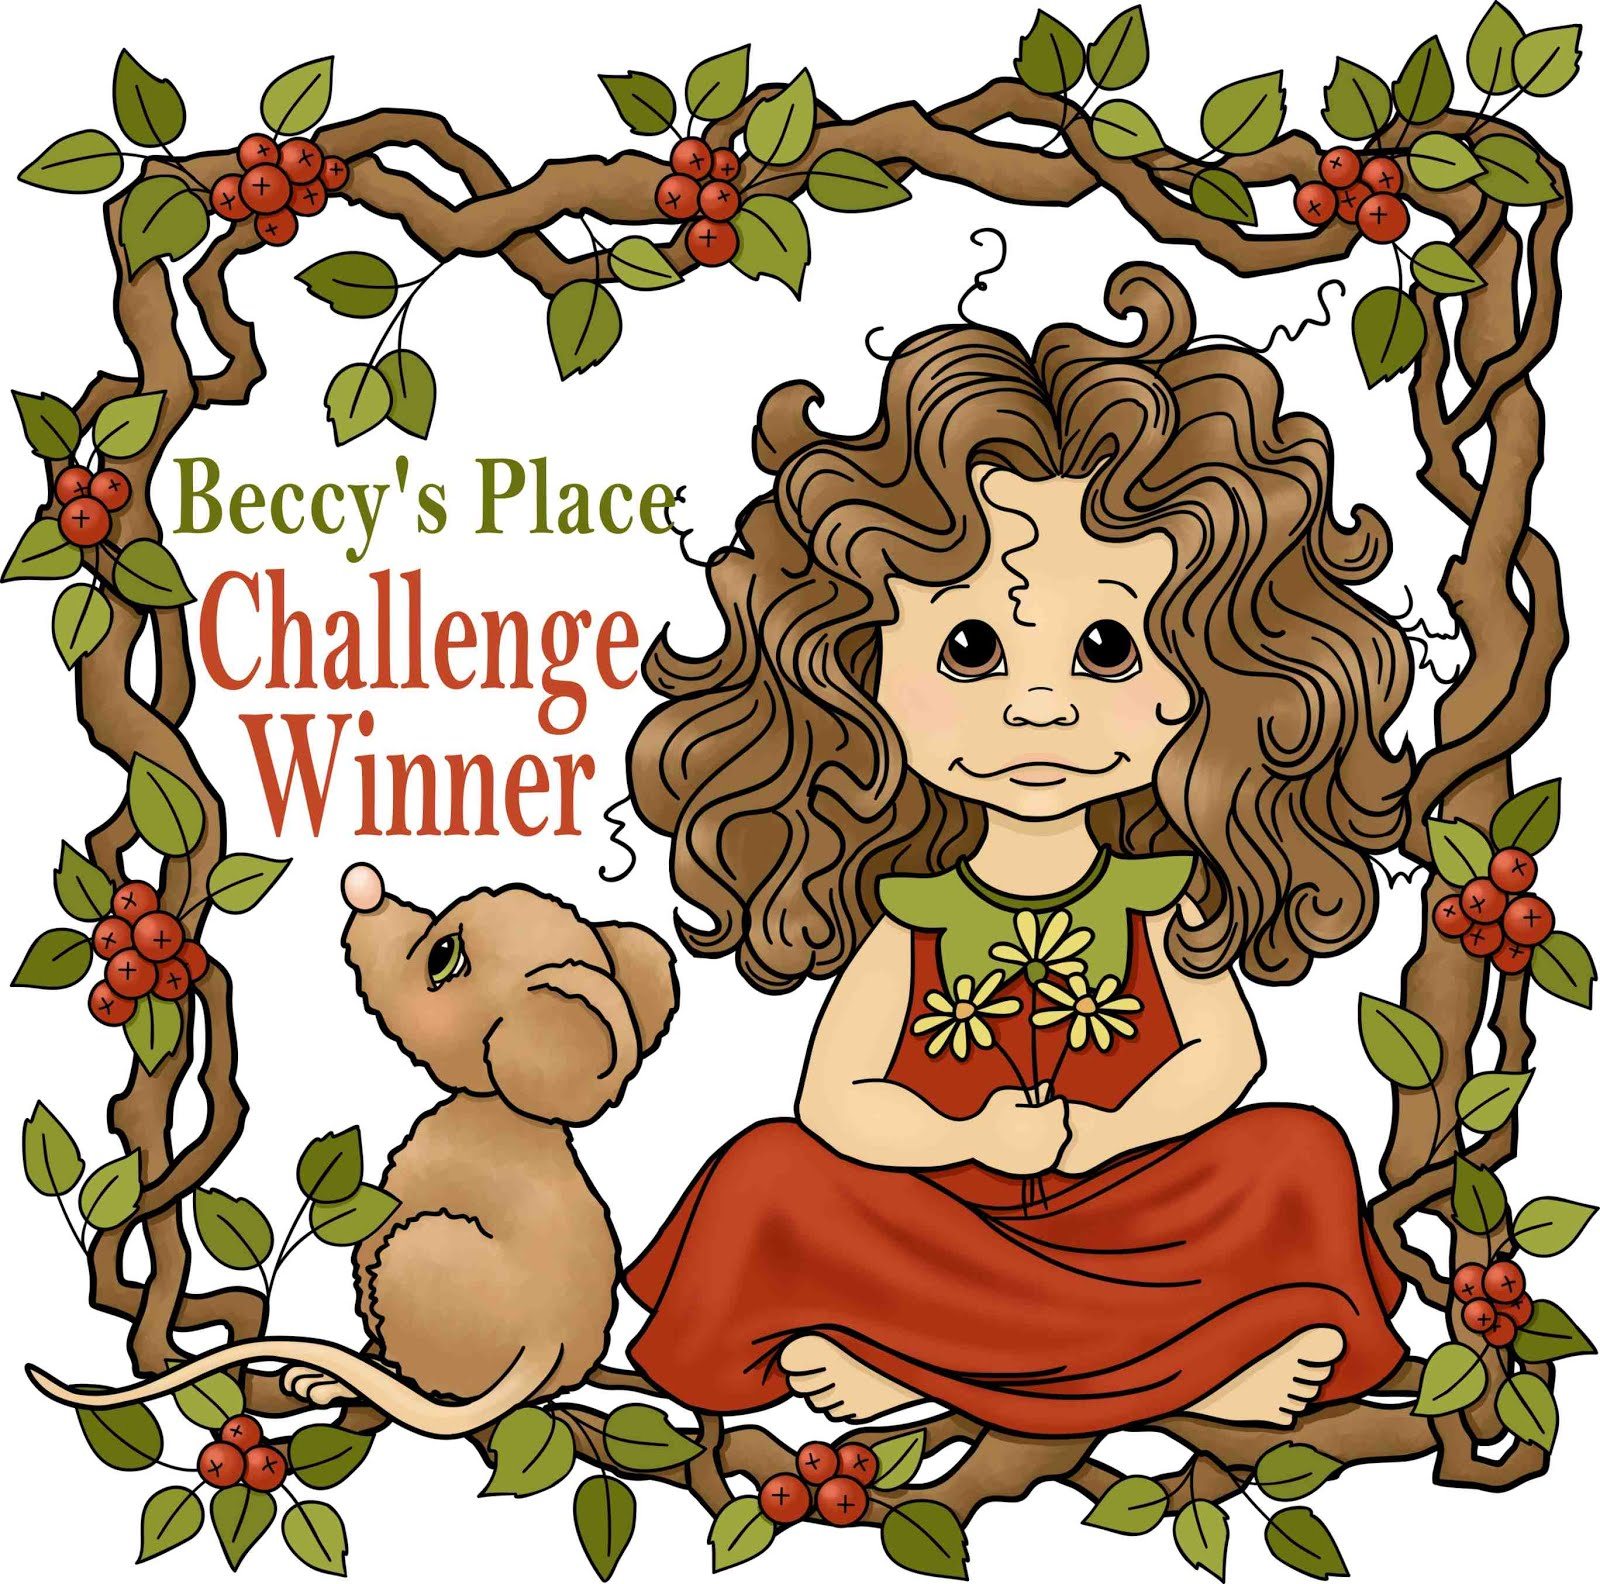 Beccy's Place Random Winner